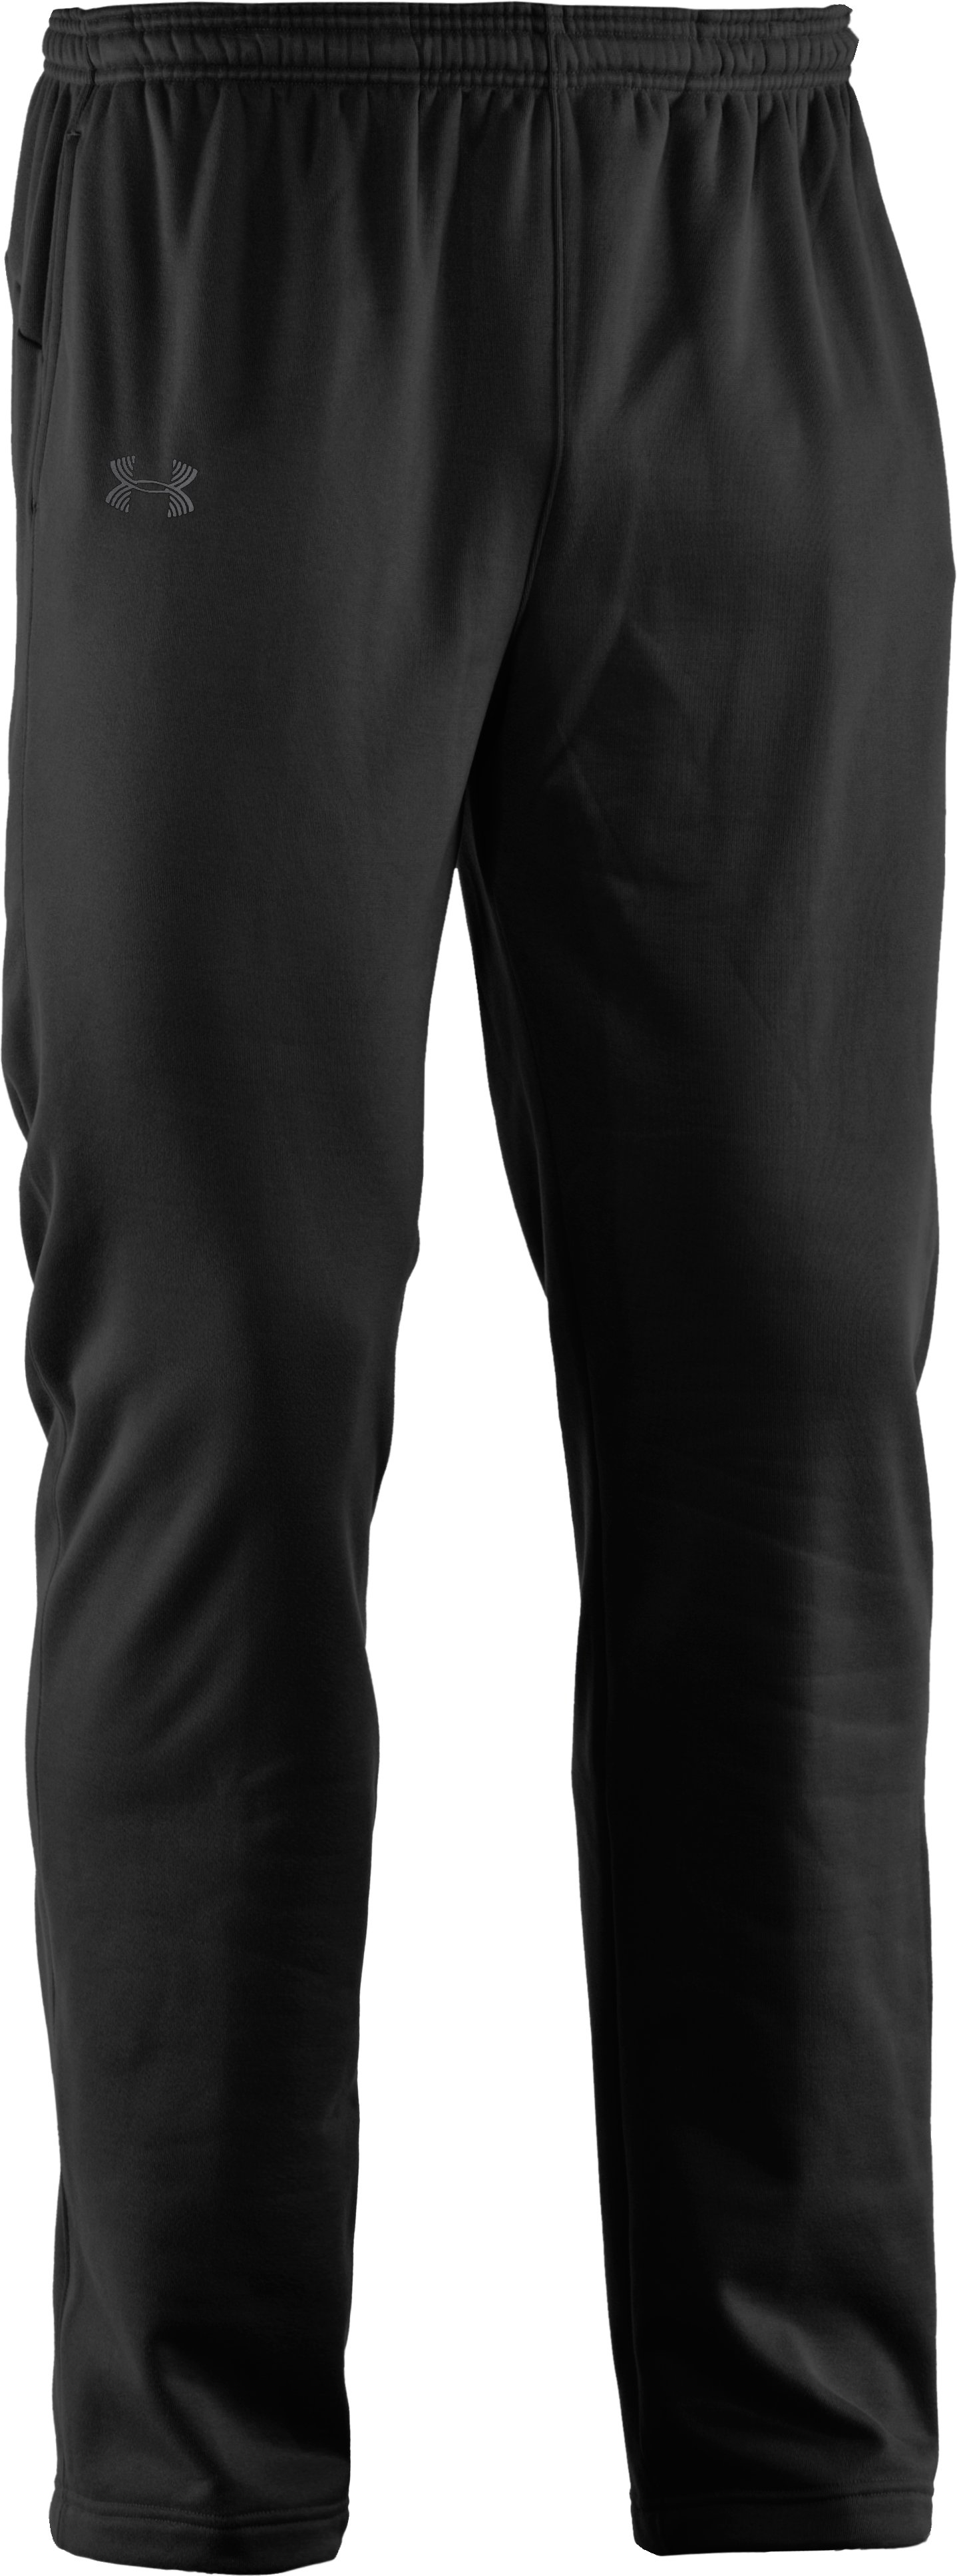 Men's UA Catalyst Fleece Pants, Black